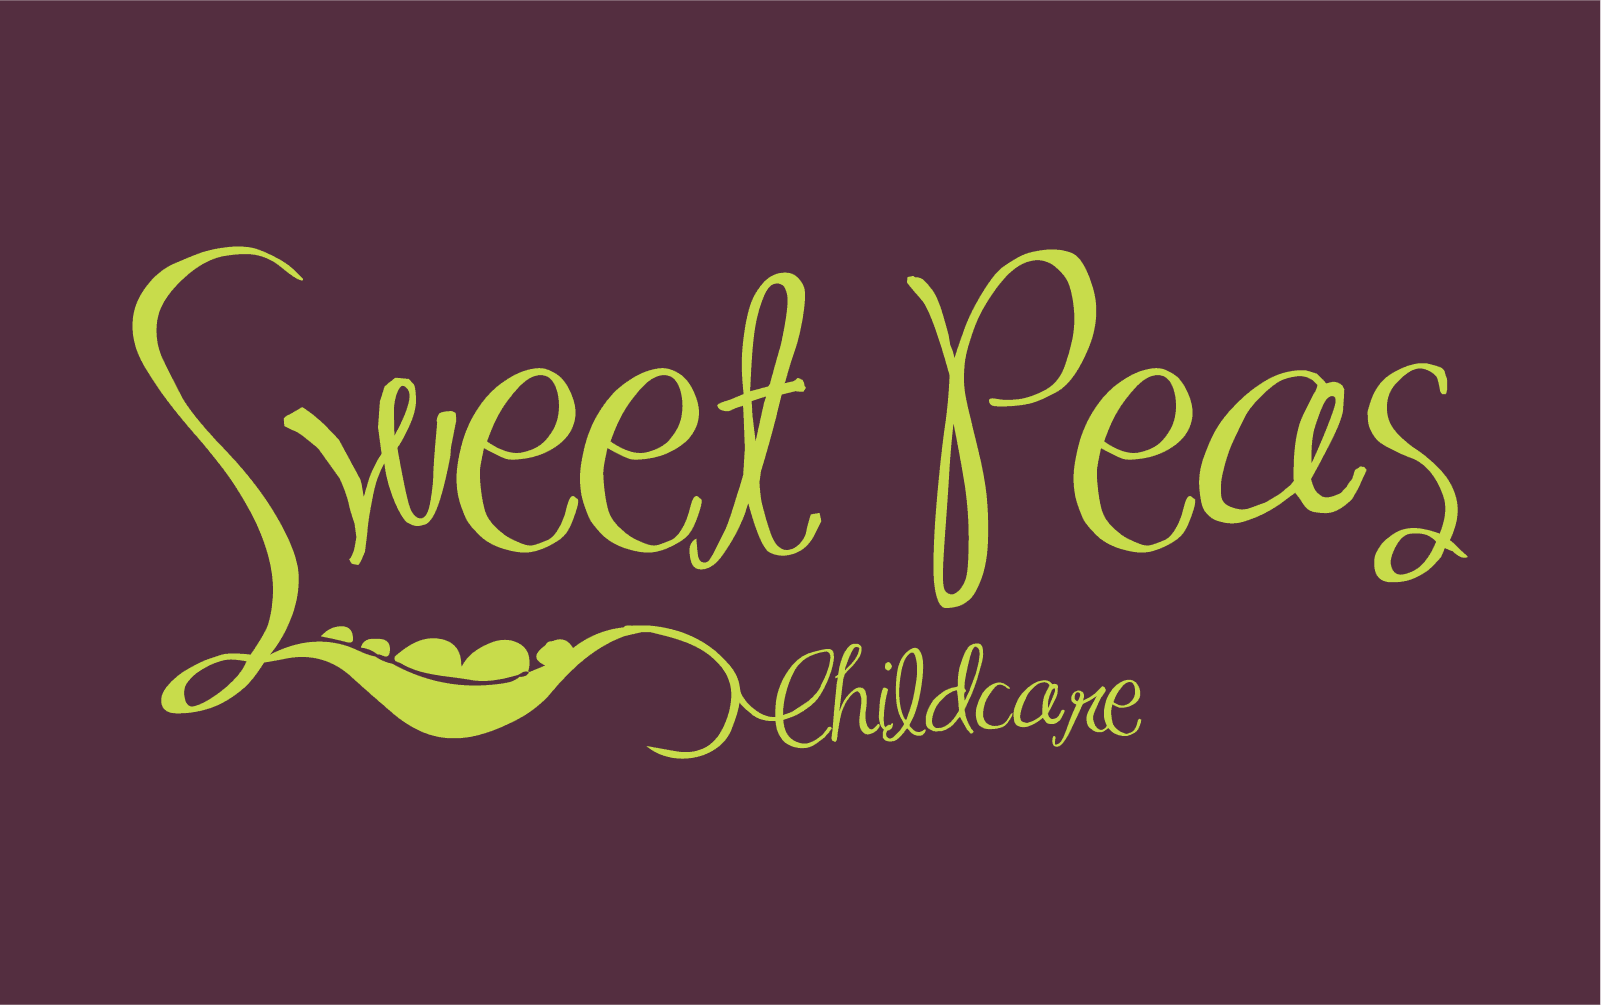 Sweet peas child care logo explanation